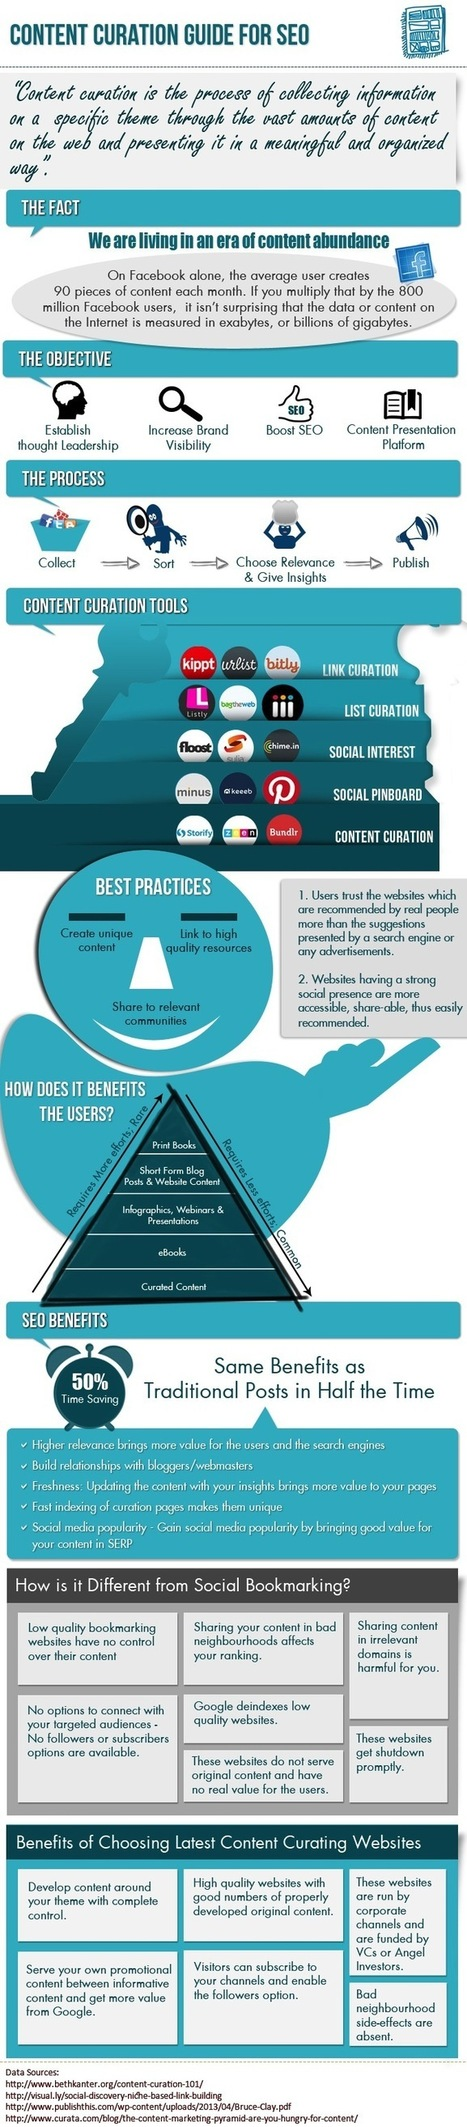 Content Curation Infographic: Process & Best Practices | Personal Branding and Professional networks | Scoop.it